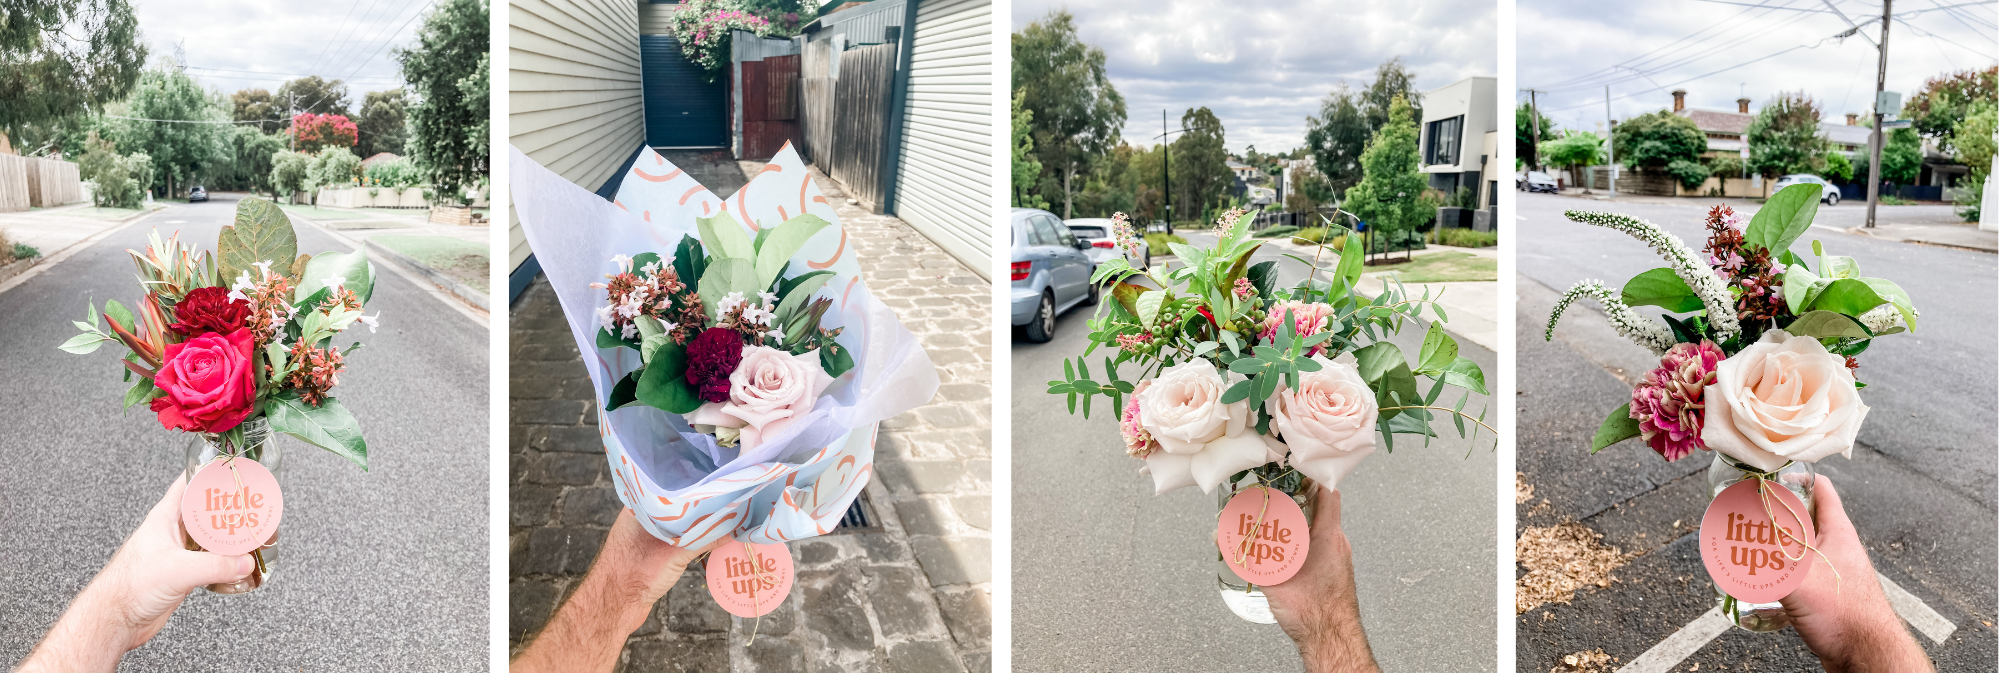 A selection of our recent flower jars and bunches moments before they were delivered across Melbourne. They are being held up by our Flower Delivery Specialist in the residential streets of Melbourne suburbs.